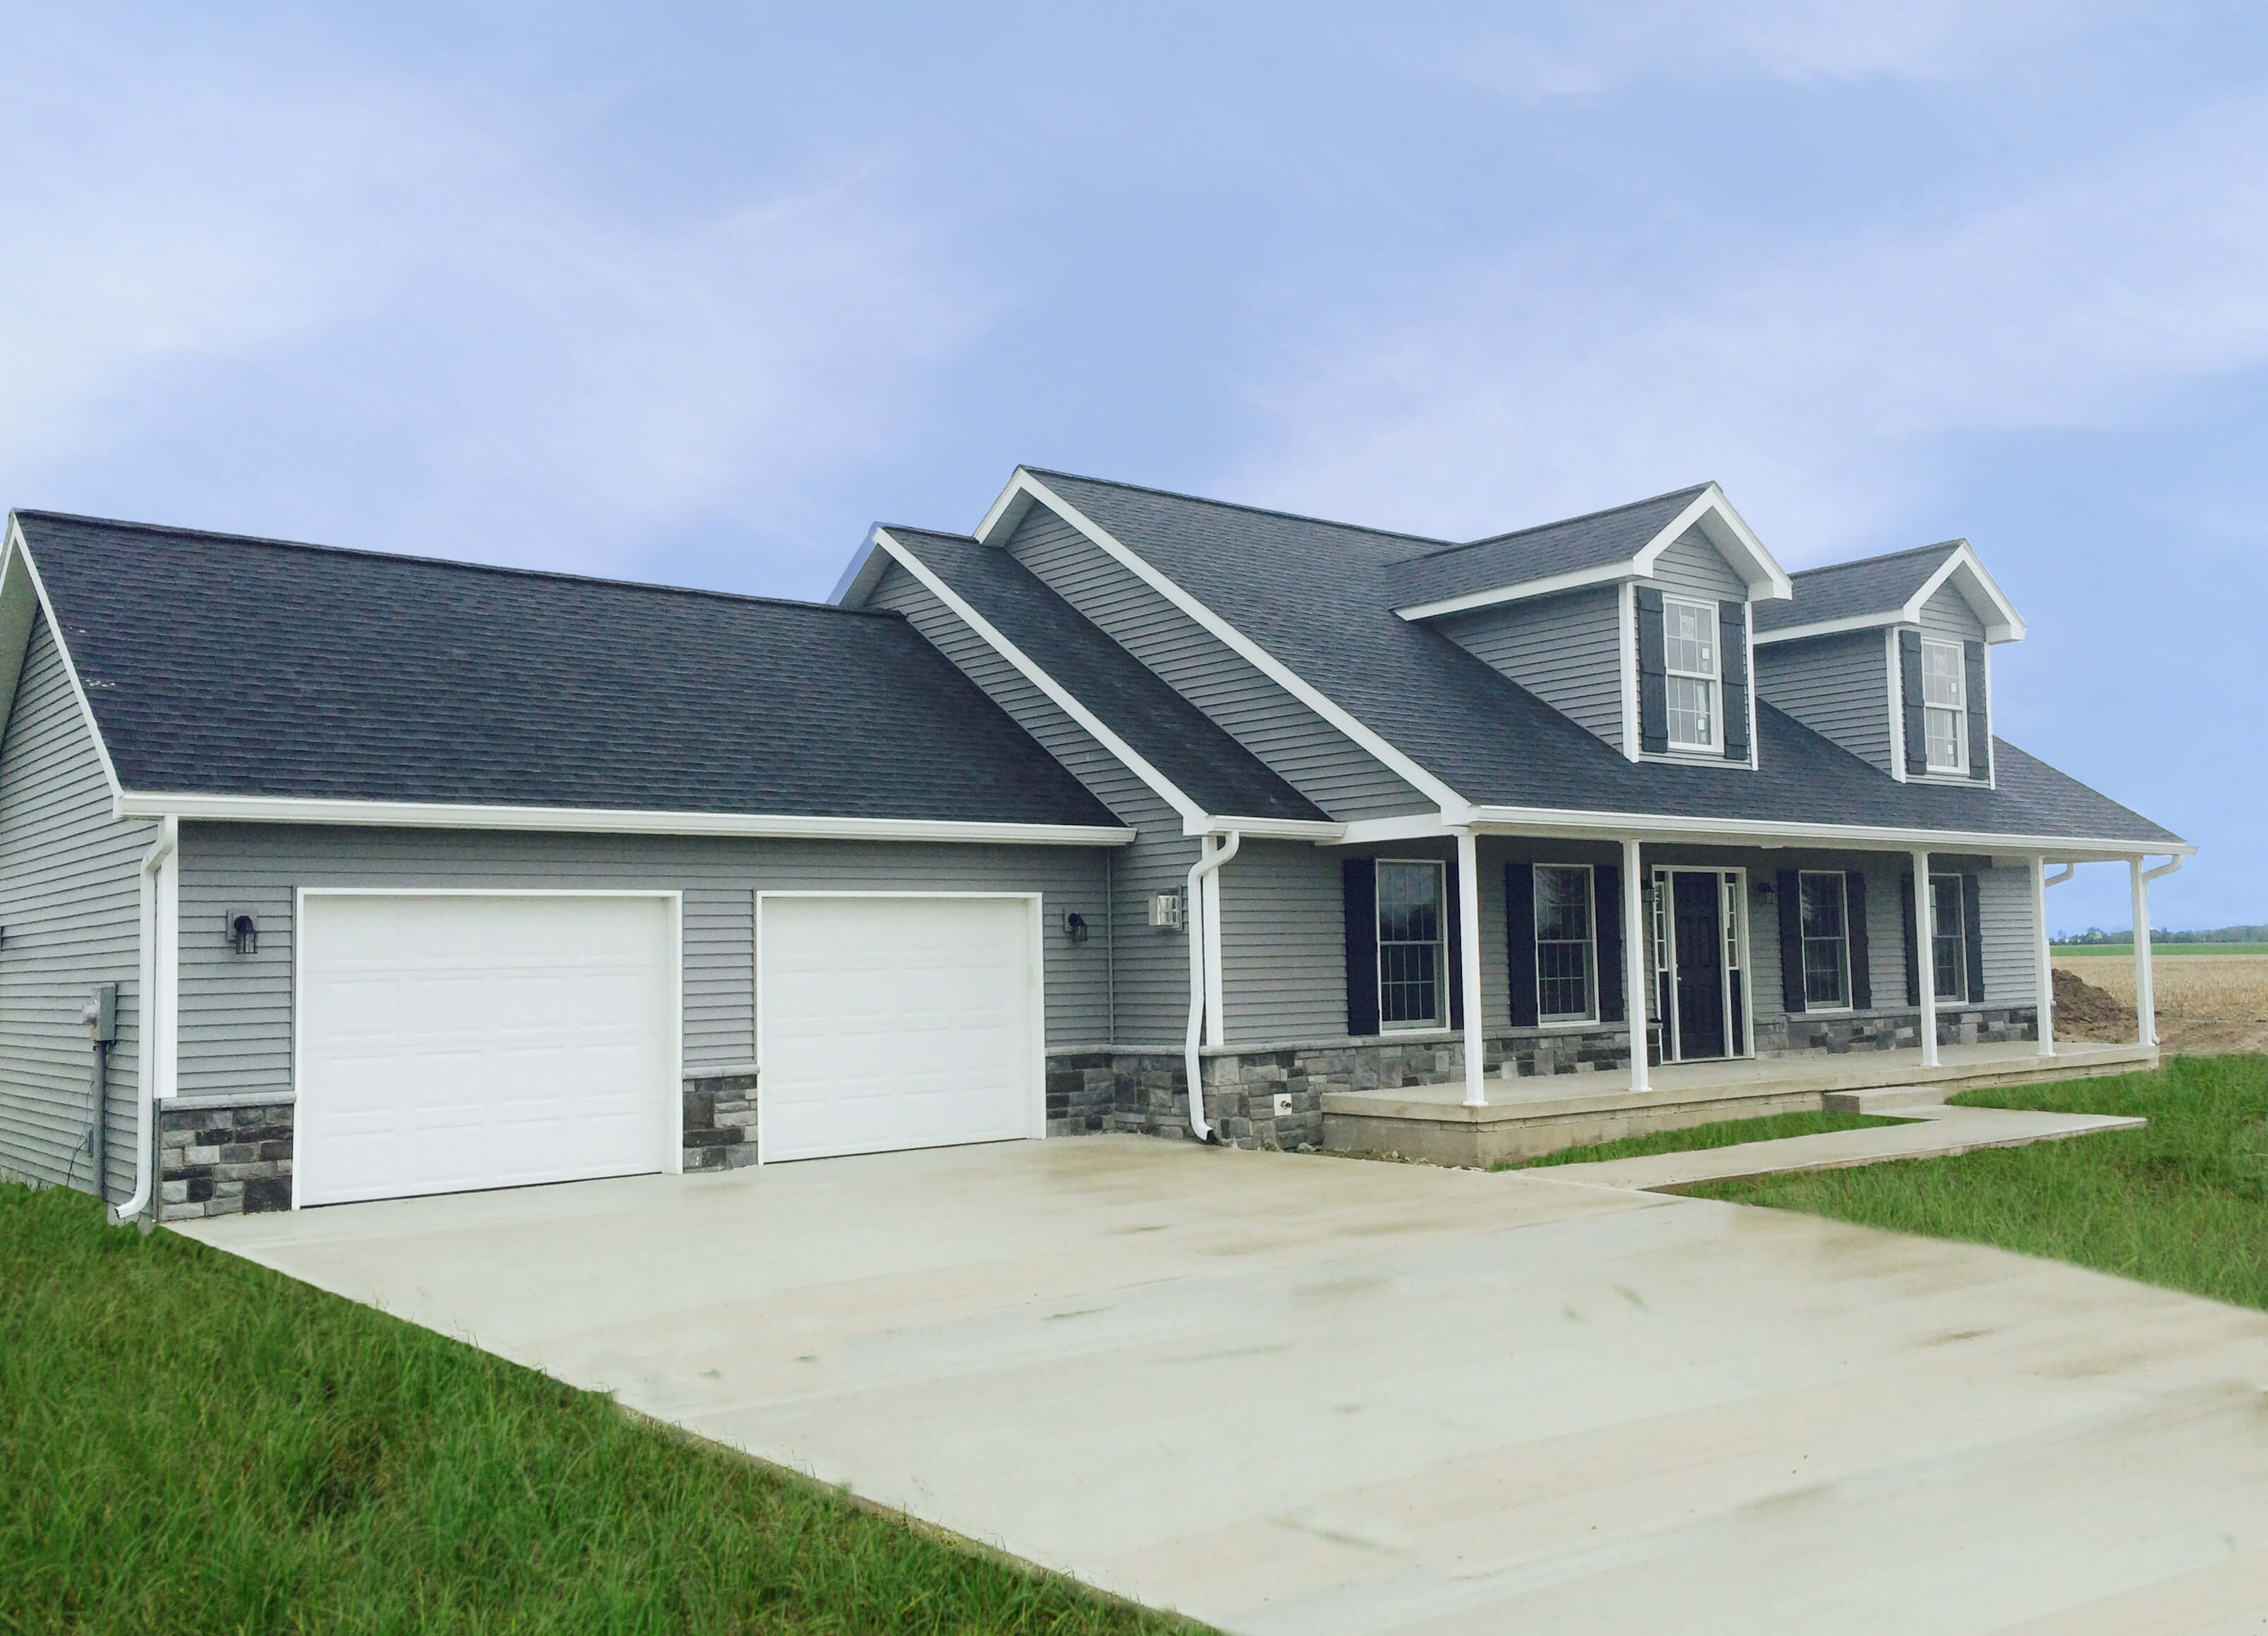 Taylor Kingsport Edited Hallmark Homes Indiana 39 S: indiana home builders on your lot